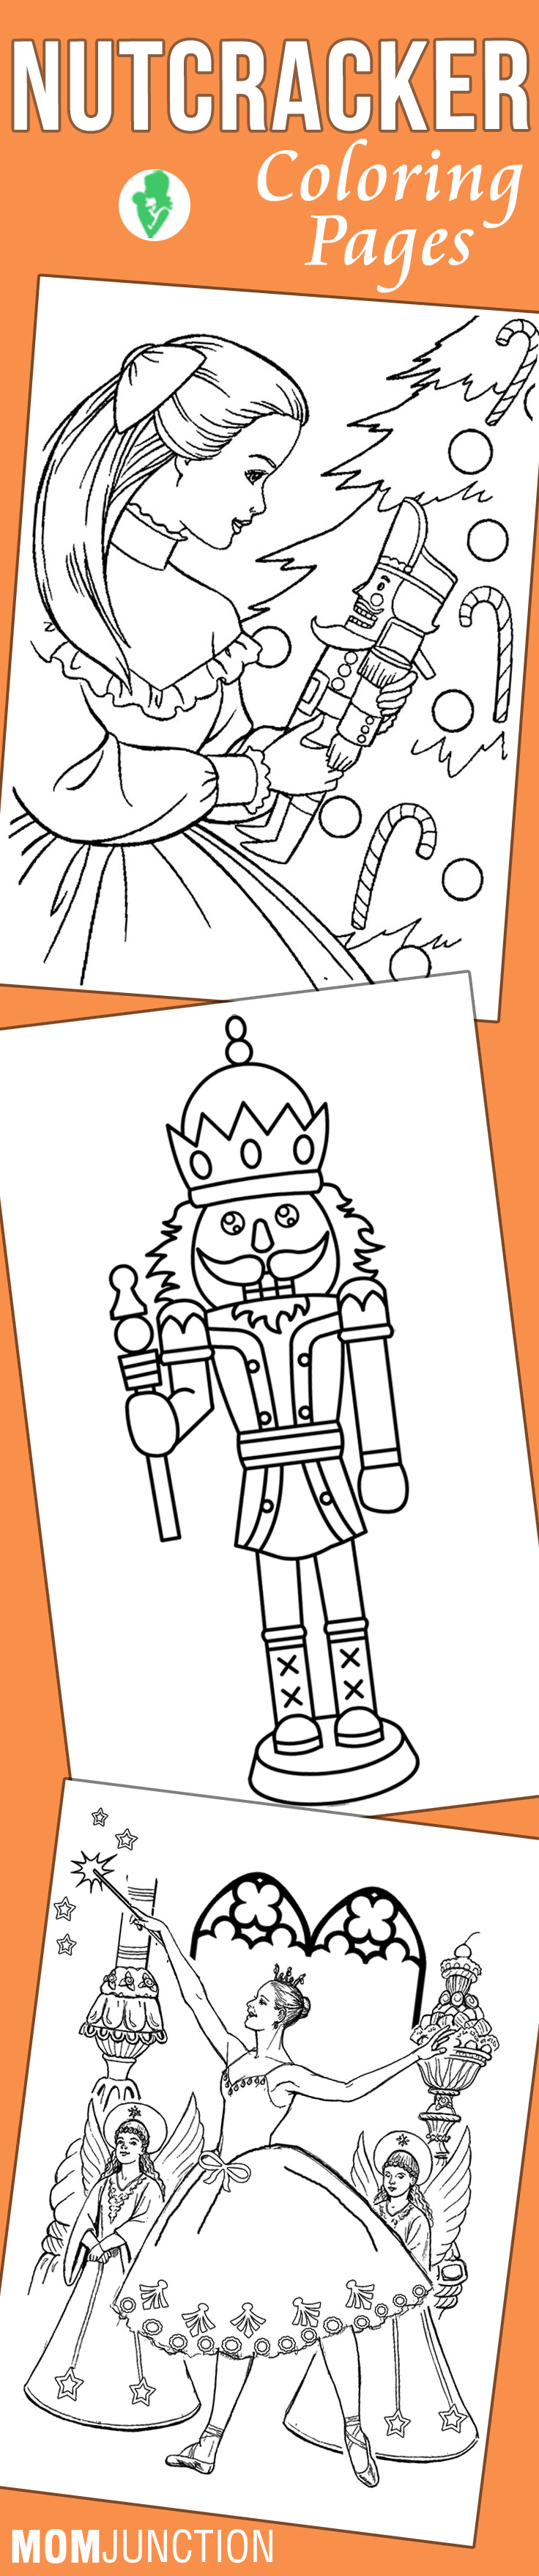 Free printable santa wish list coloring page tickled peach studio - Top 10 Nutcracker Coloring Pages For Your Little Ones